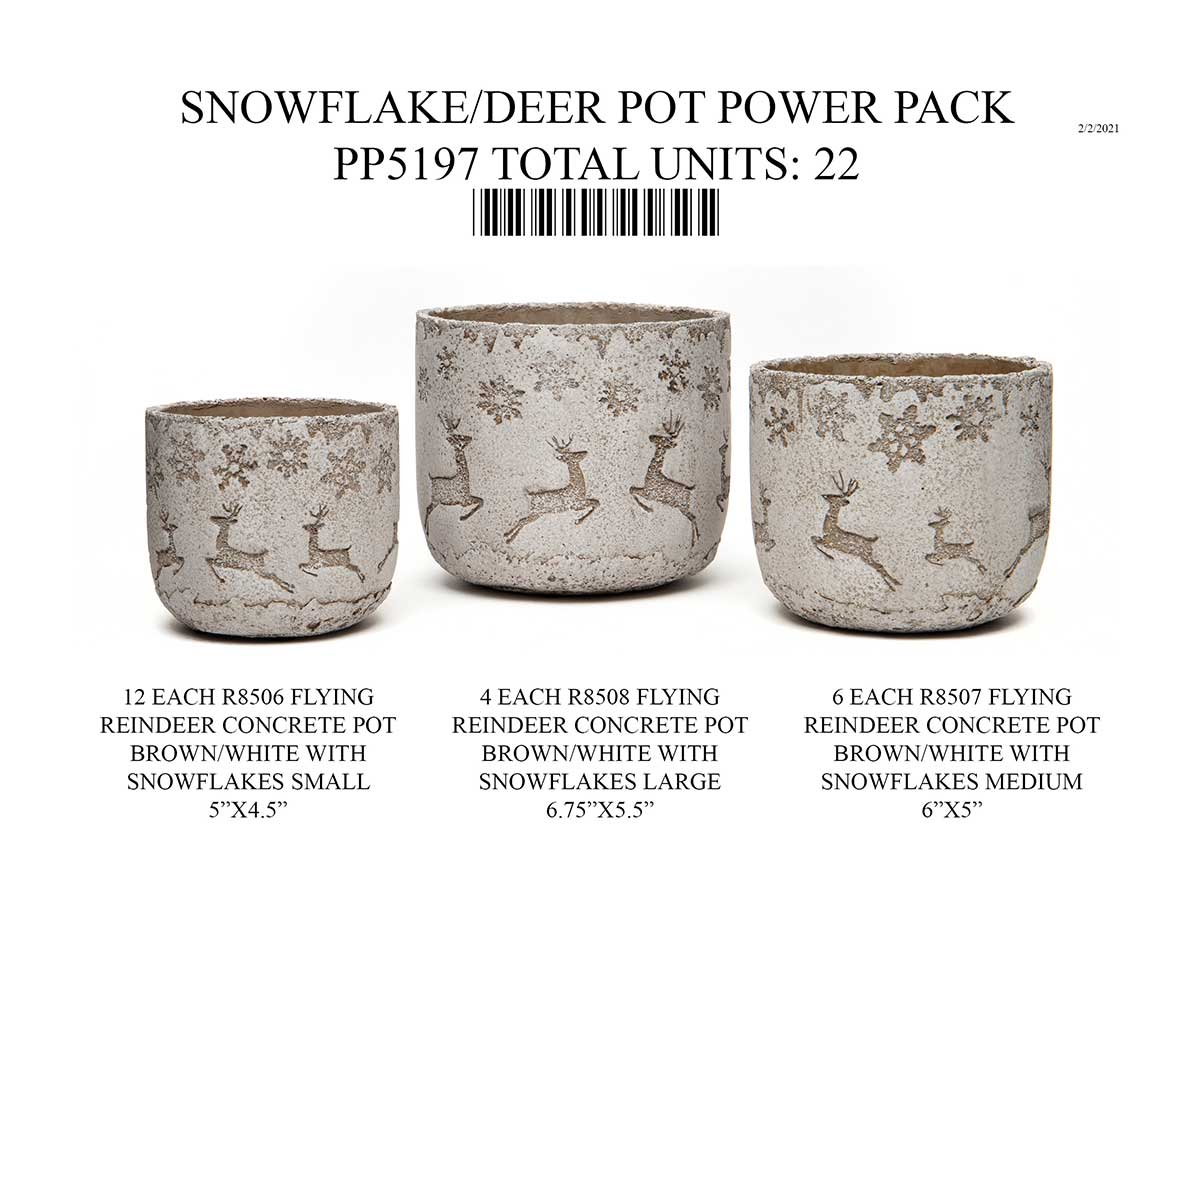 SNOWFLAKE/DEER POT BEIGE/CREAM POWER PACK 22 UNITS PP5197